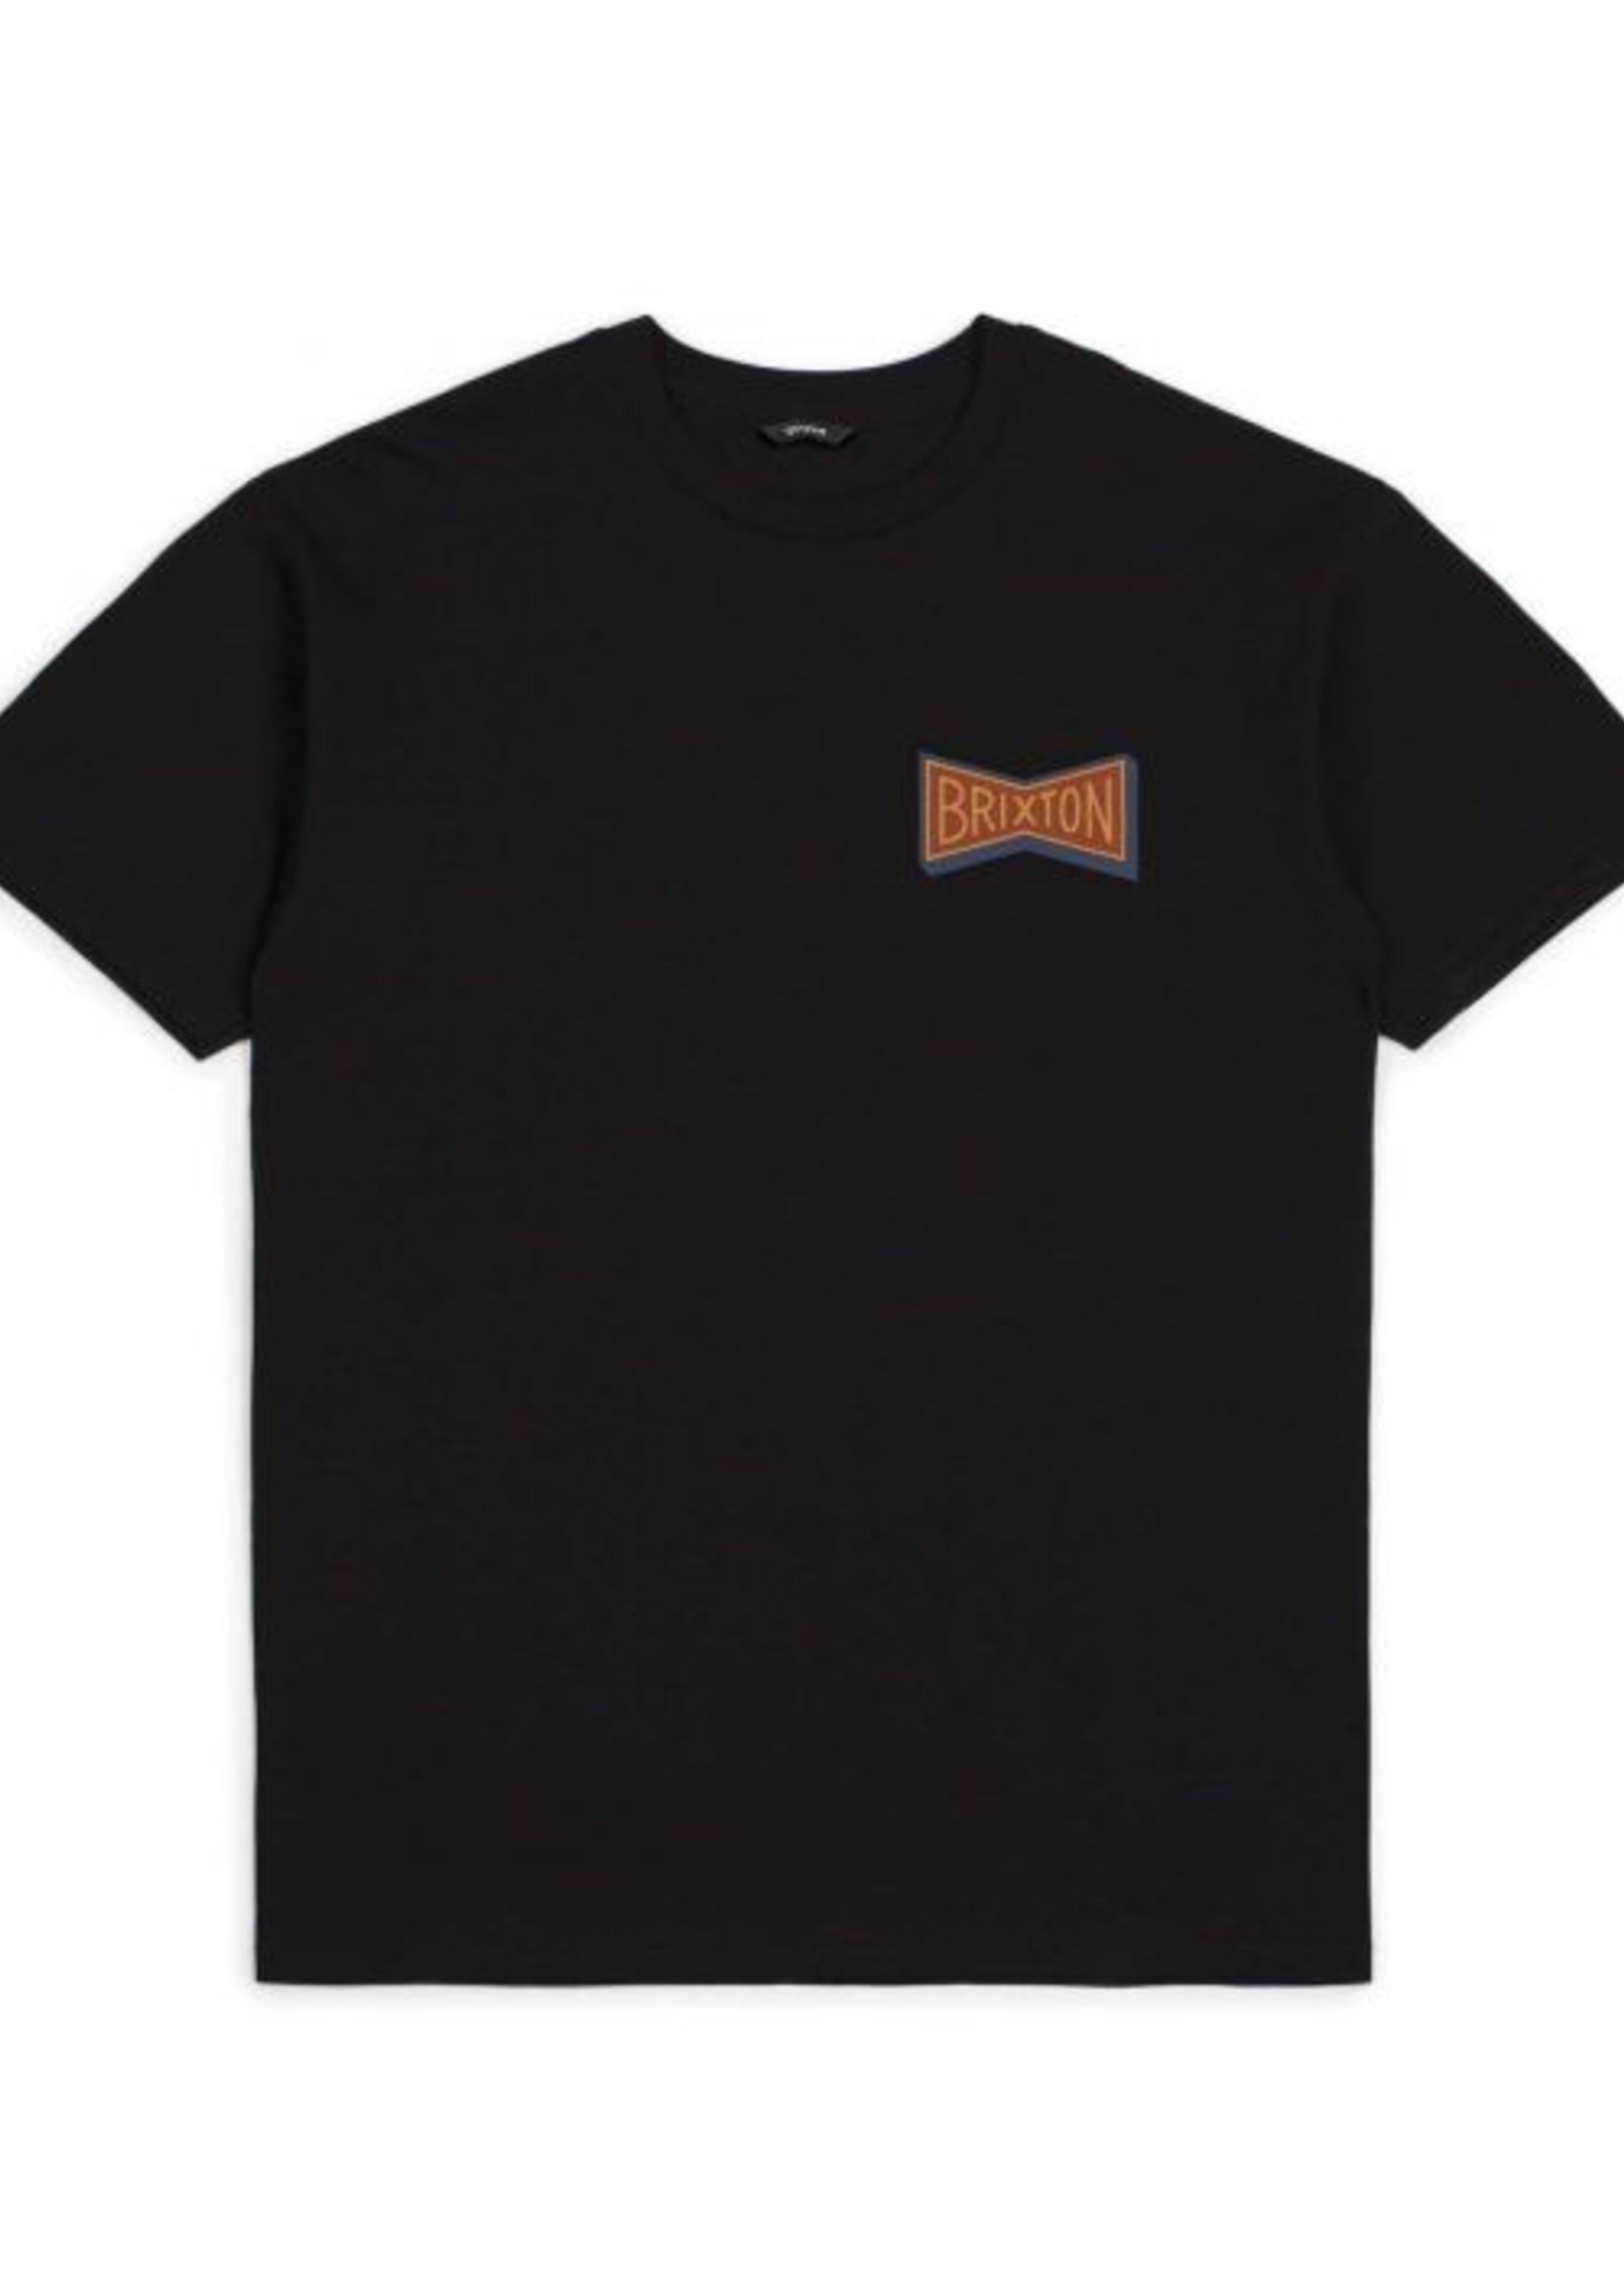 Brixton Ironclad Tee - Black